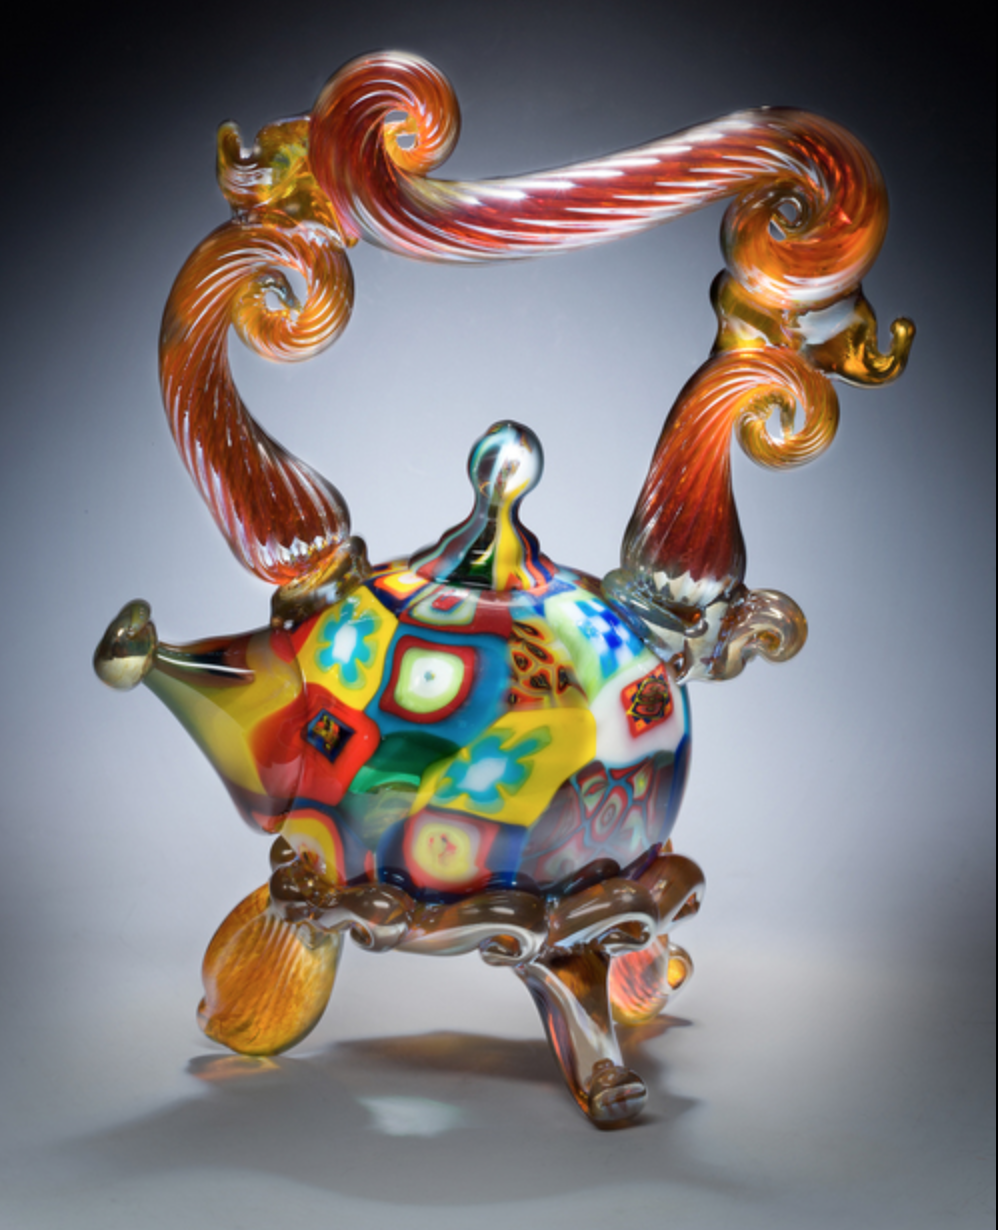 Paul Counts - Hand blown glass with multi-layers of colors, cane and murrini